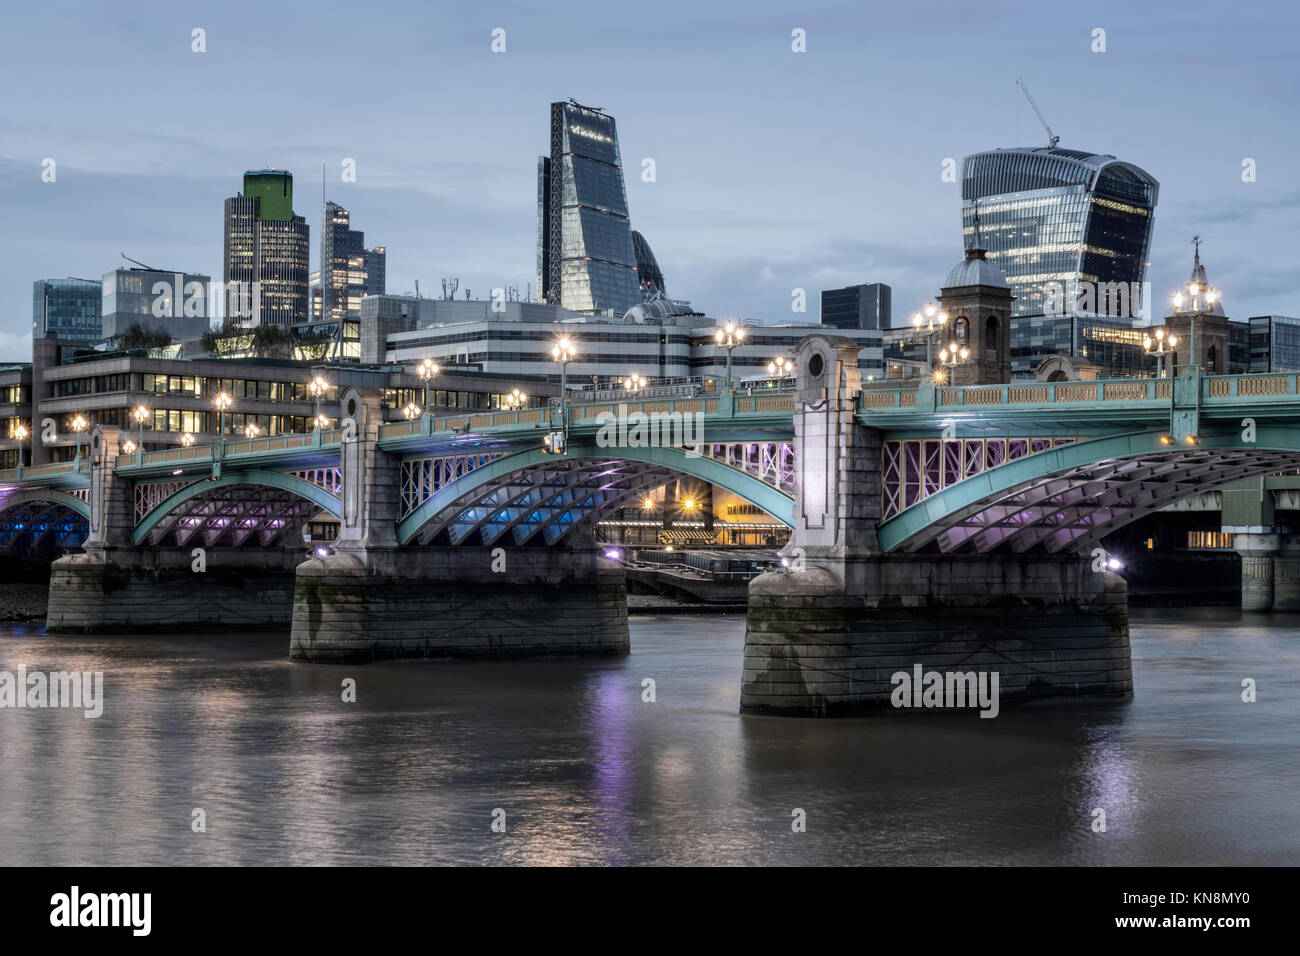 City of London. Financial district office buildings in the City of London, Southwalk Bridge, River Thames at Twilight - Stock Image